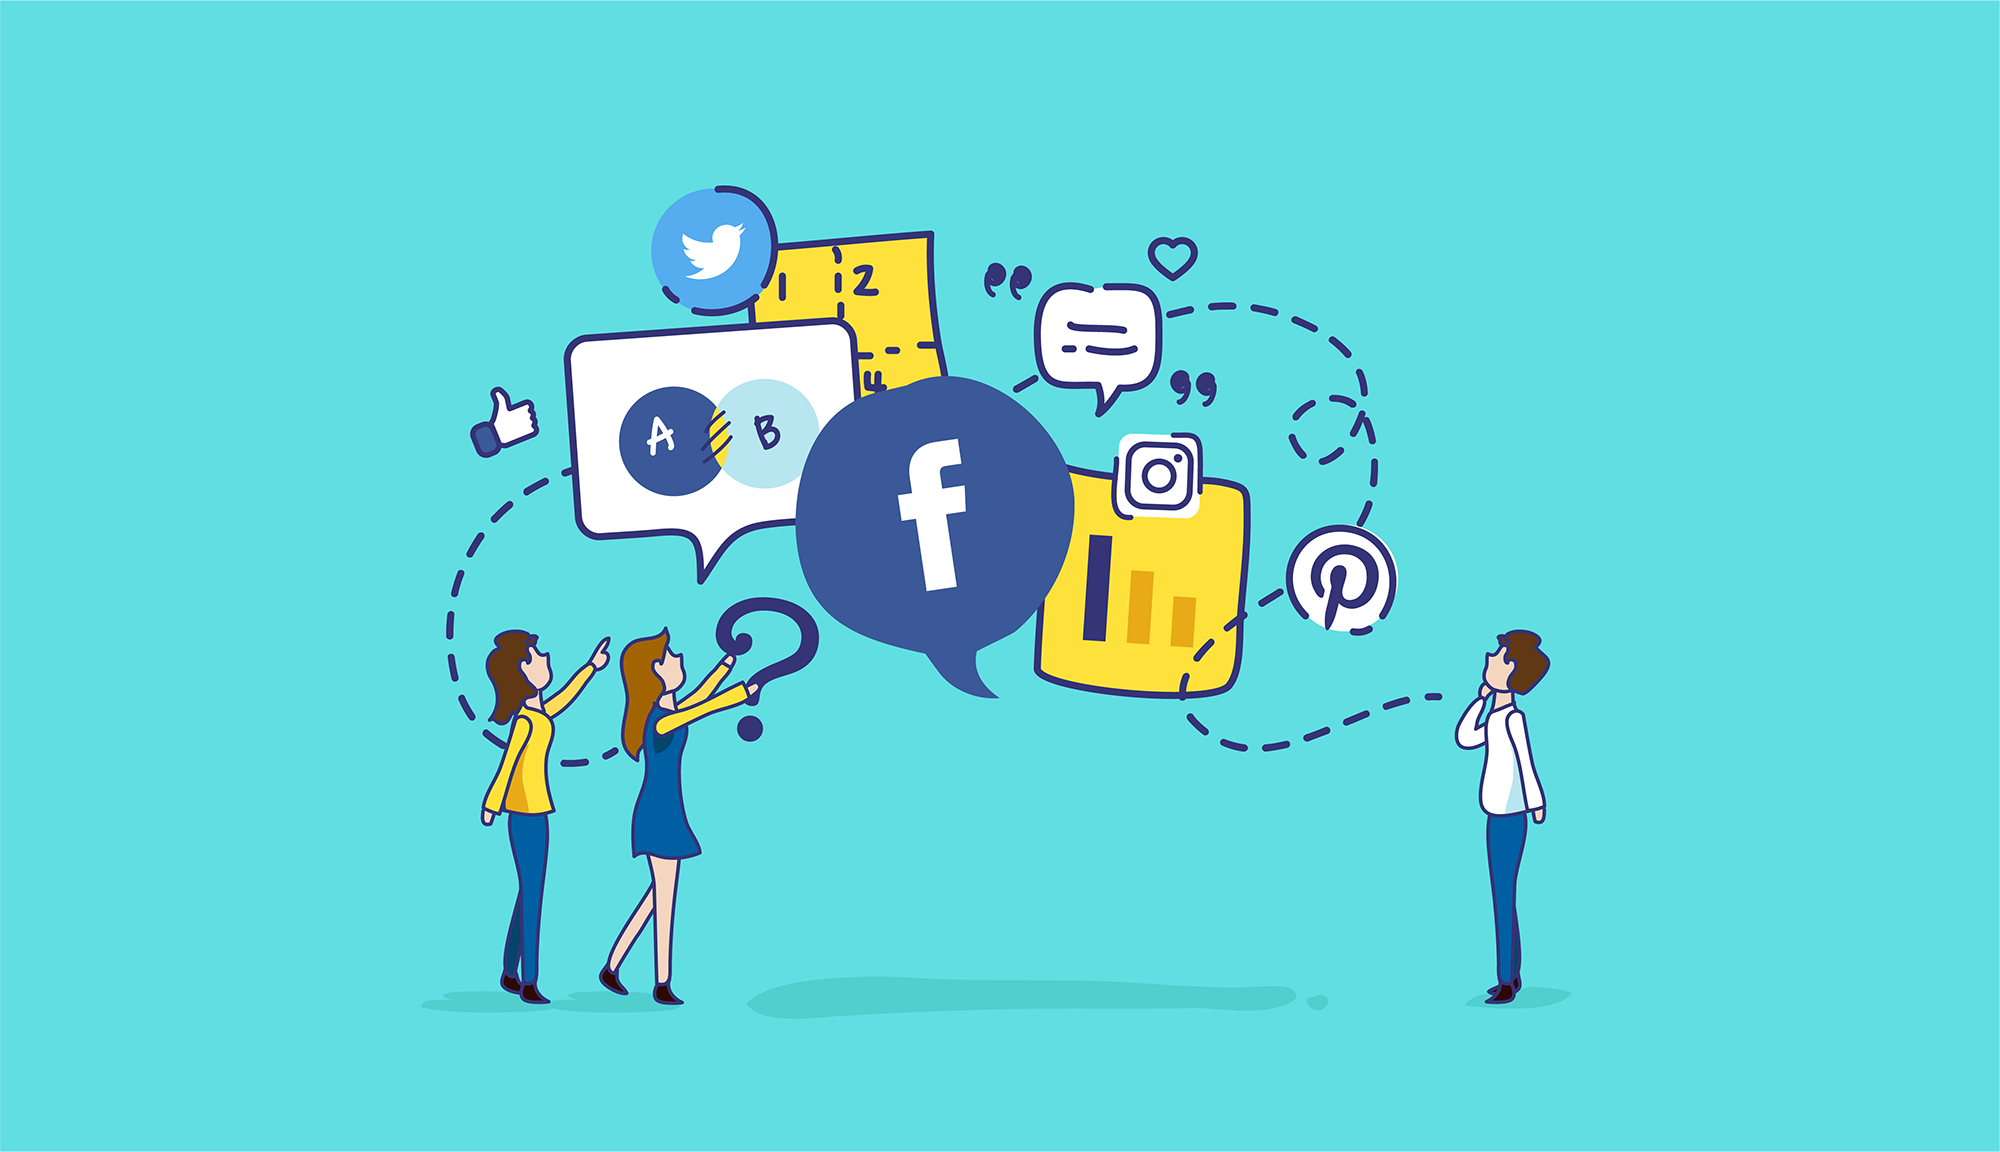 How to Create Branded Social Media Graphics That Will Make Followers Stop and Engage - by Payman ...